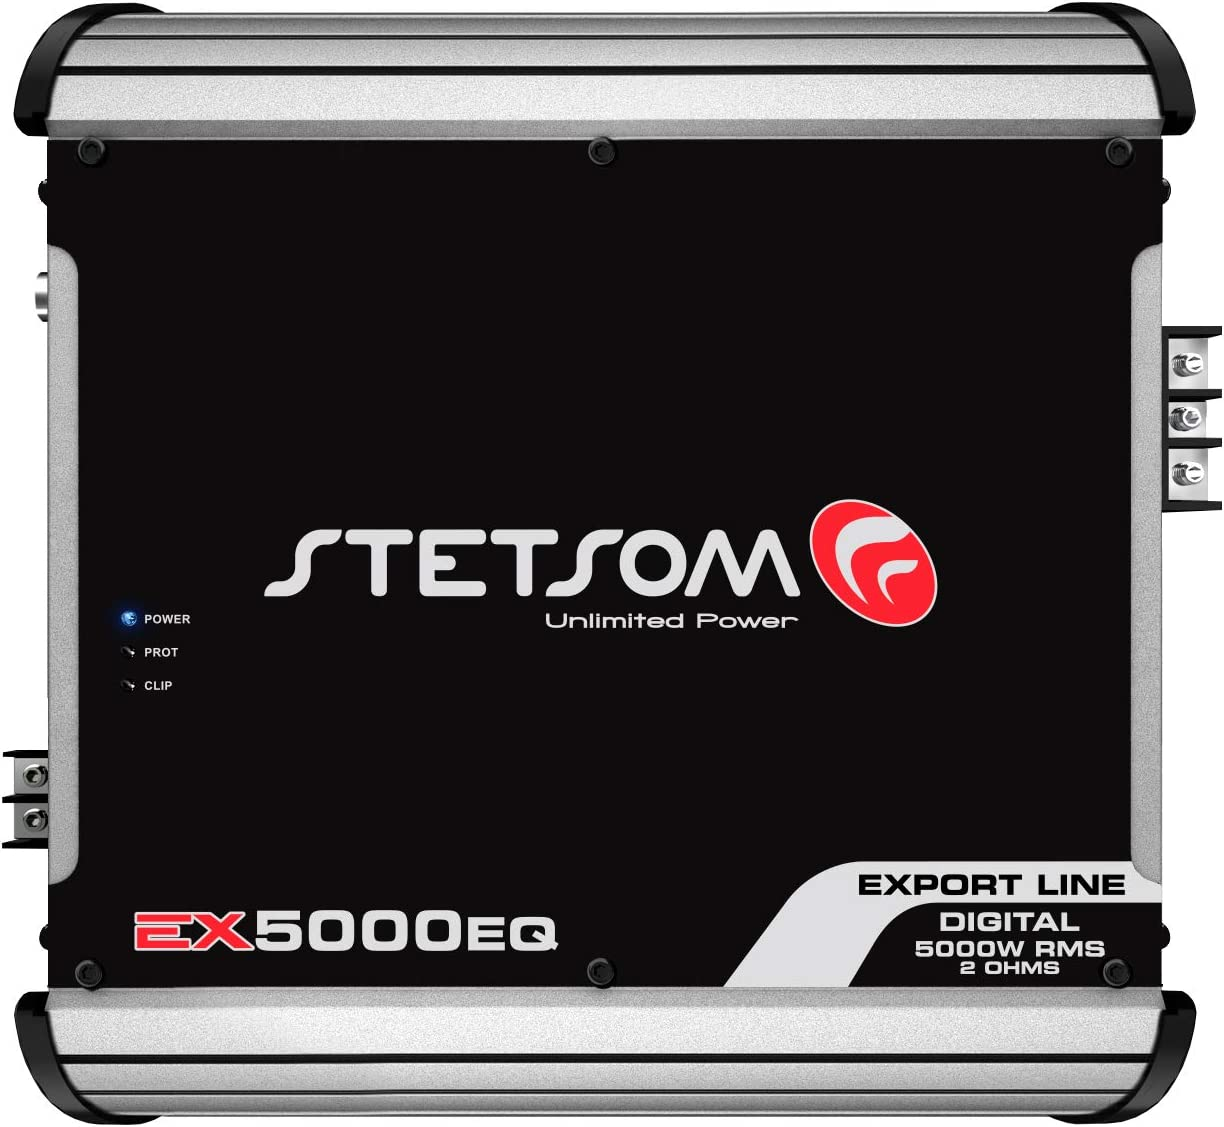 Stetsom EX 5000 EQ 1 Ohm Class D Full Range Mono Amplifier